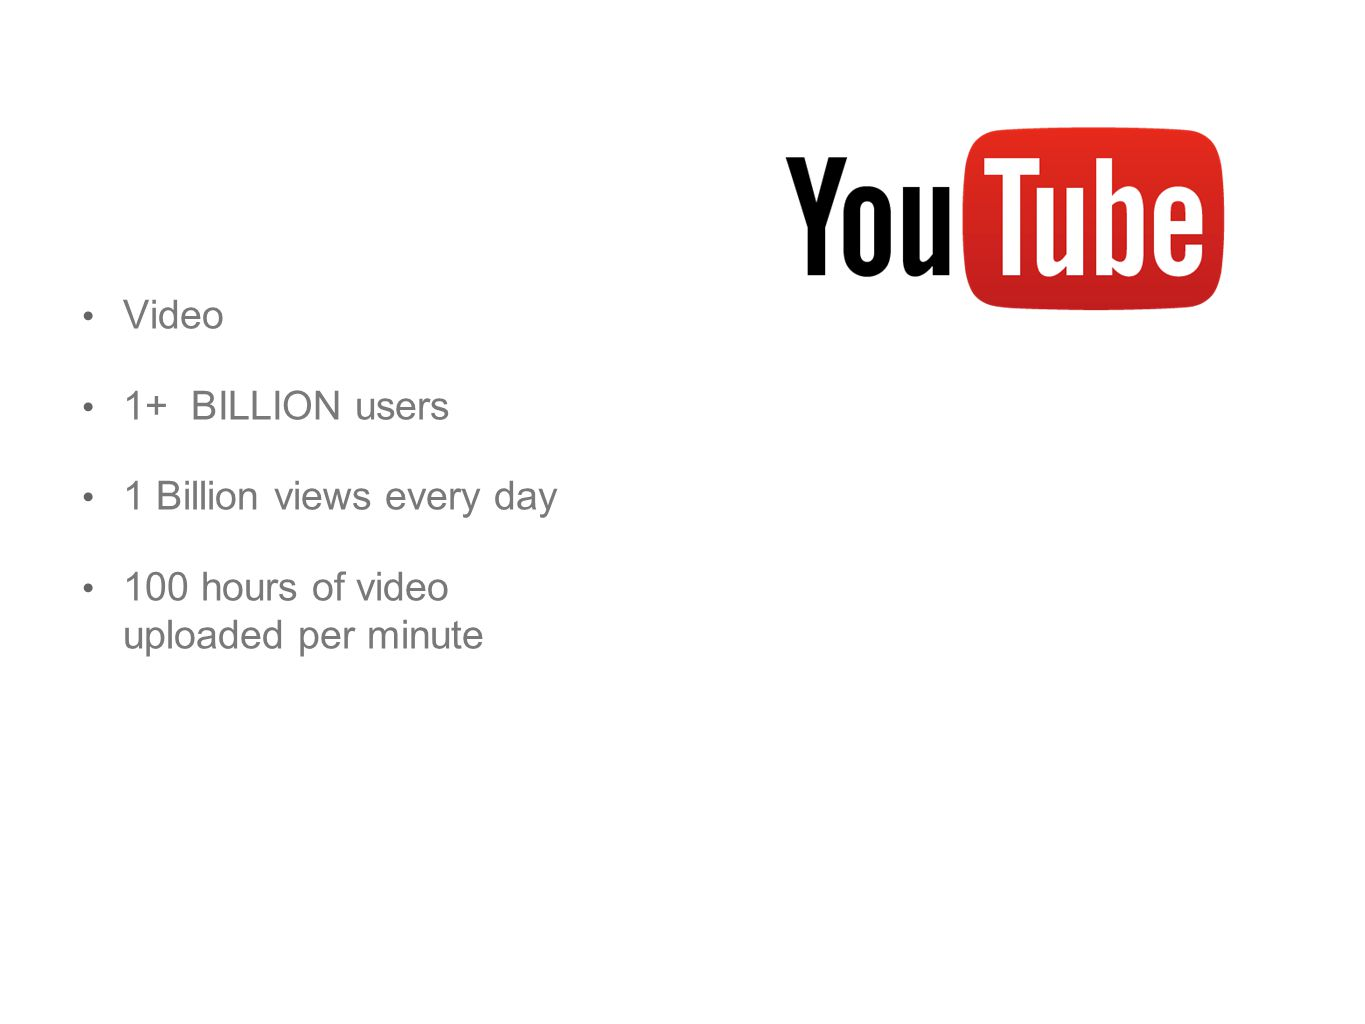 Video 1+ BILLION users 1 Billion views every day 100 hours of video uploaded per minute